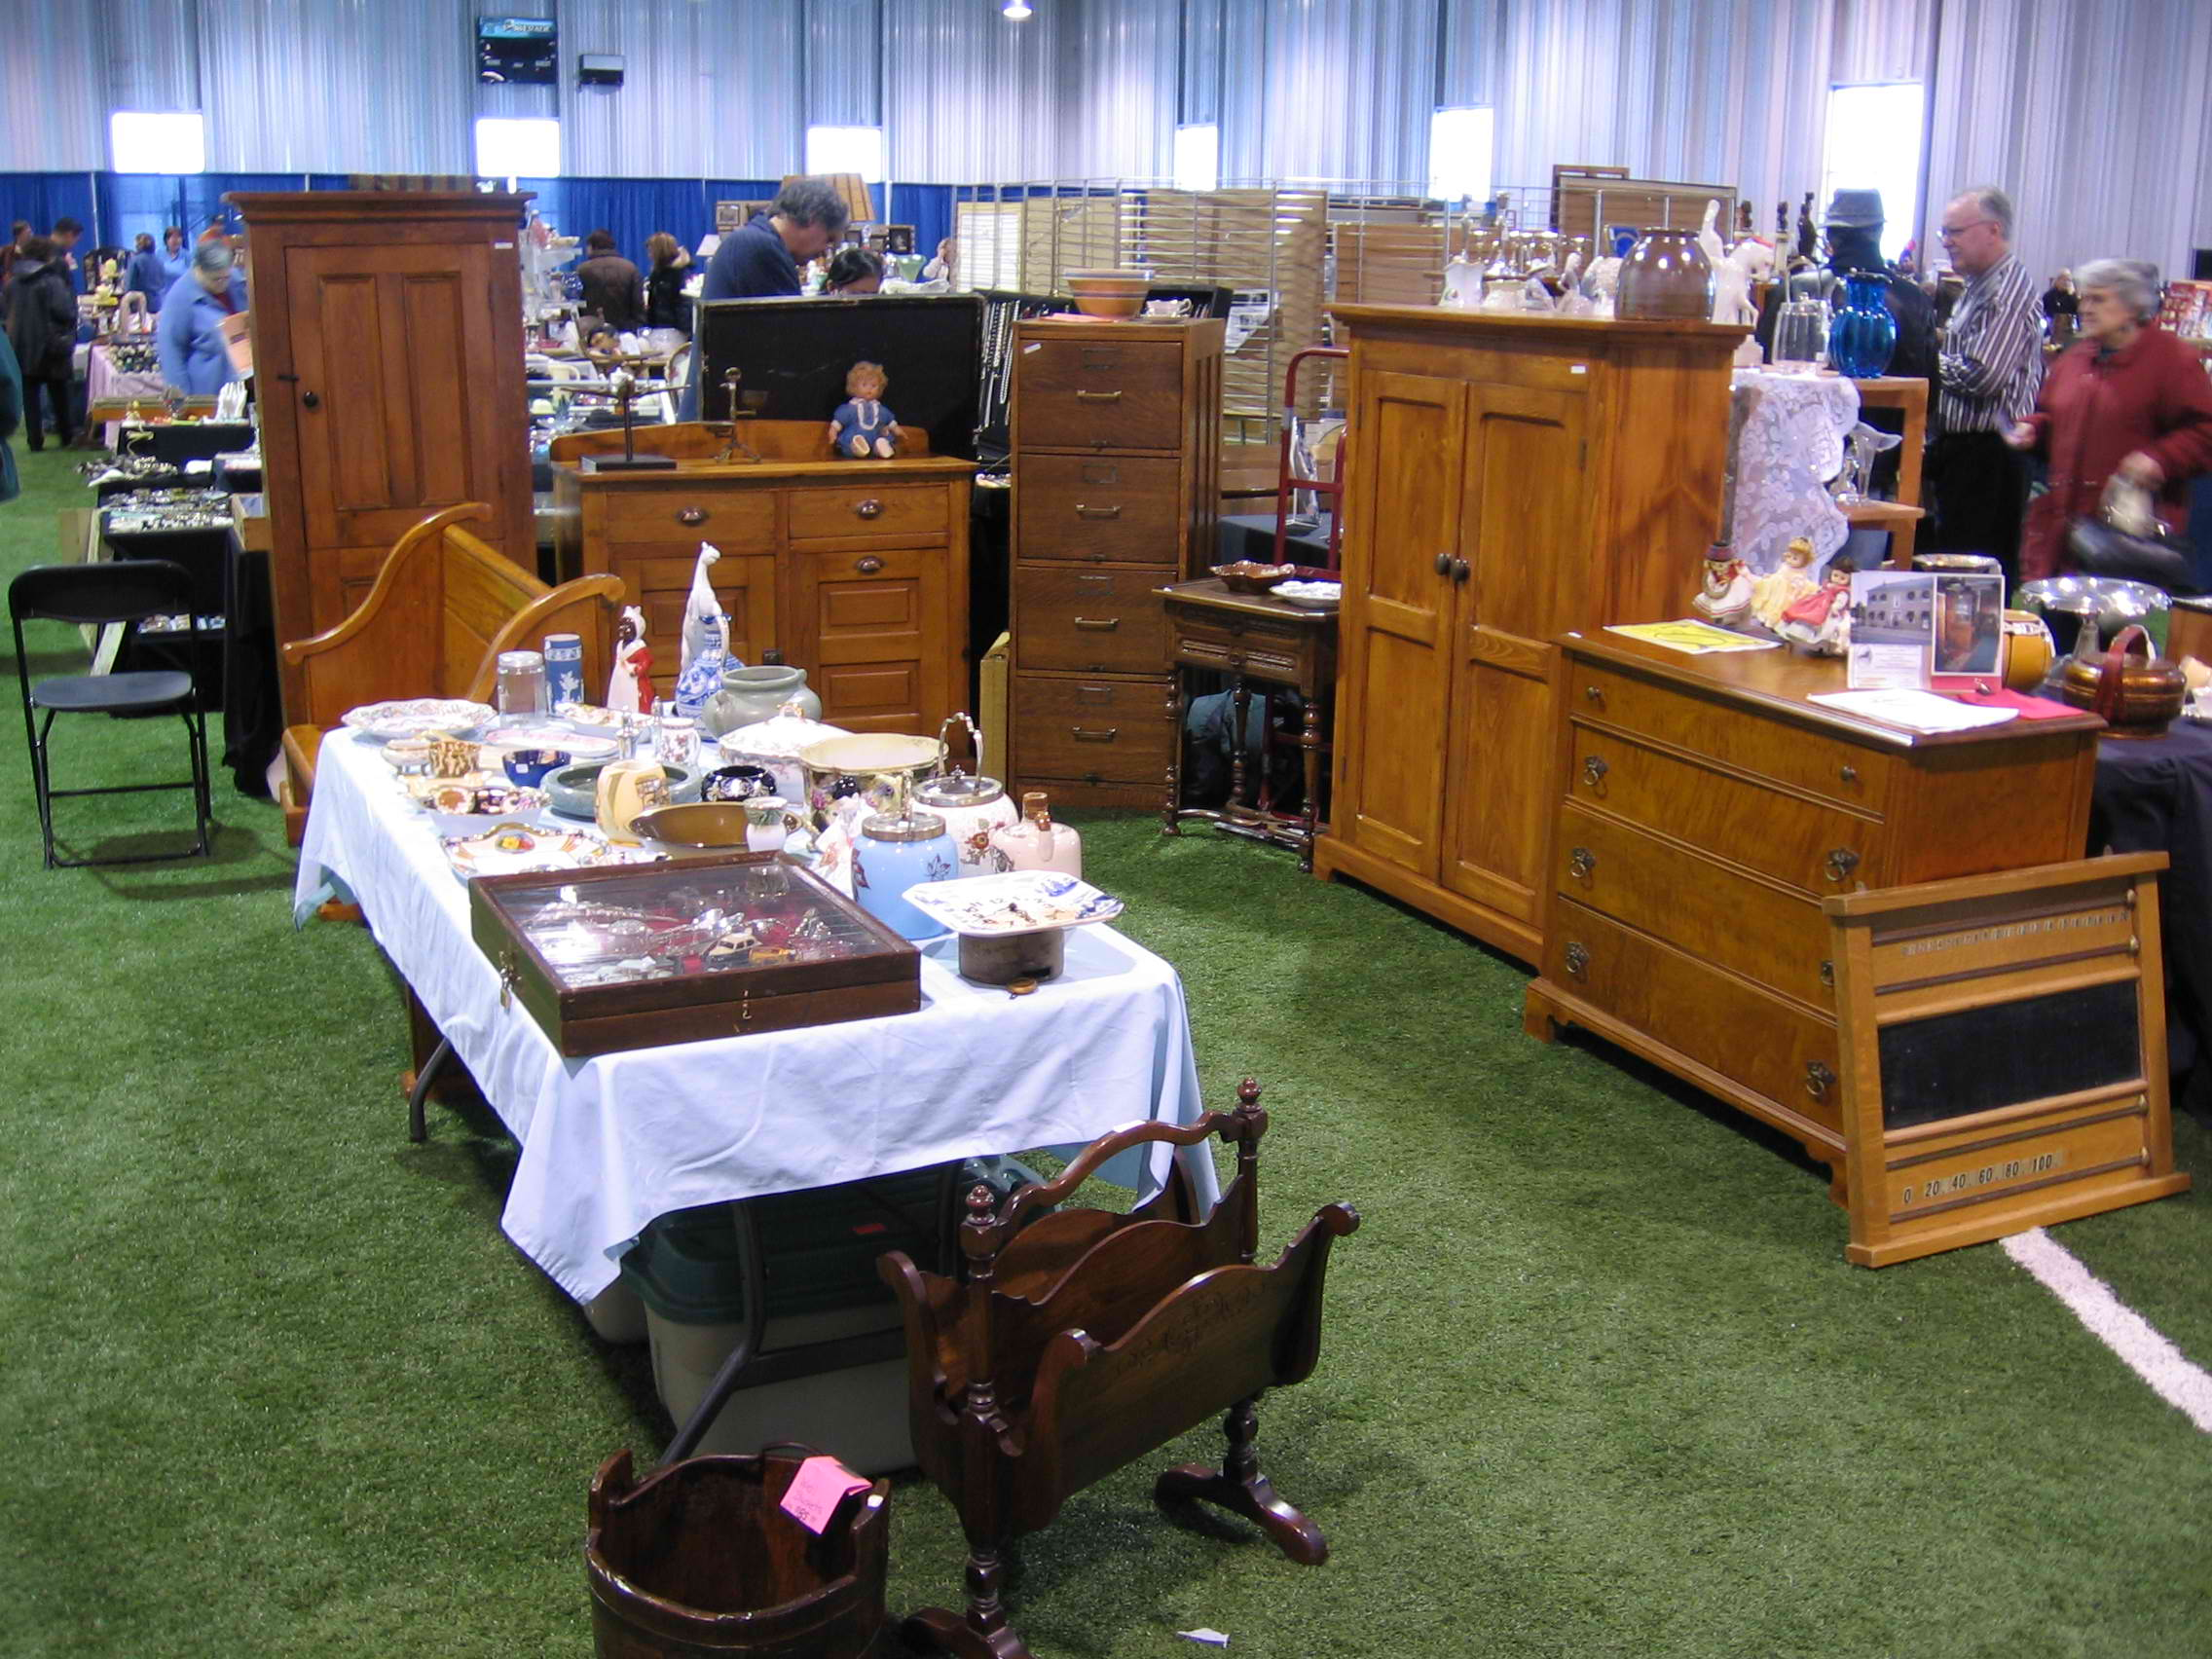 Merrickville Antique Show